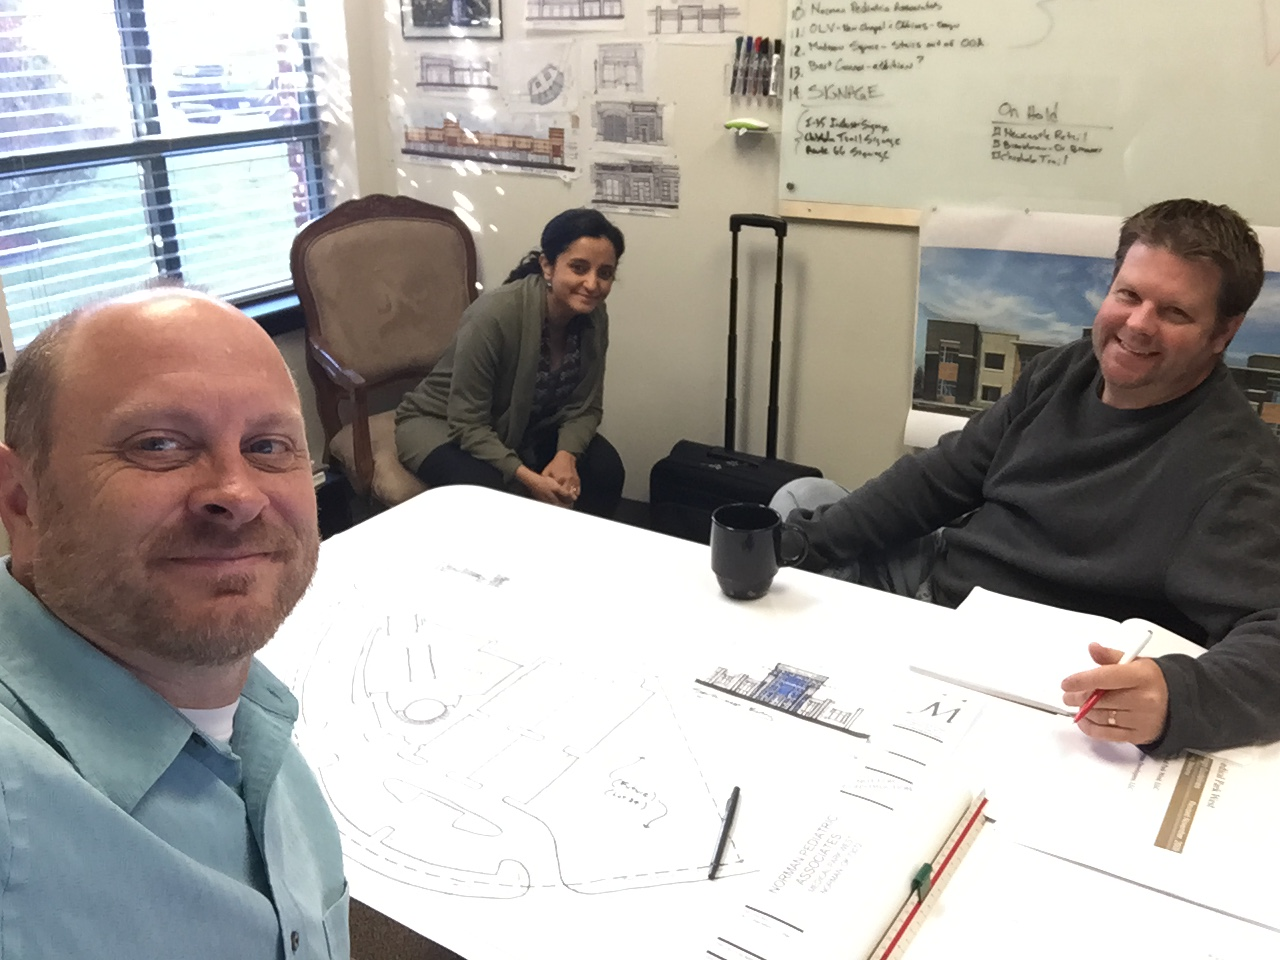 Meeting with Architects